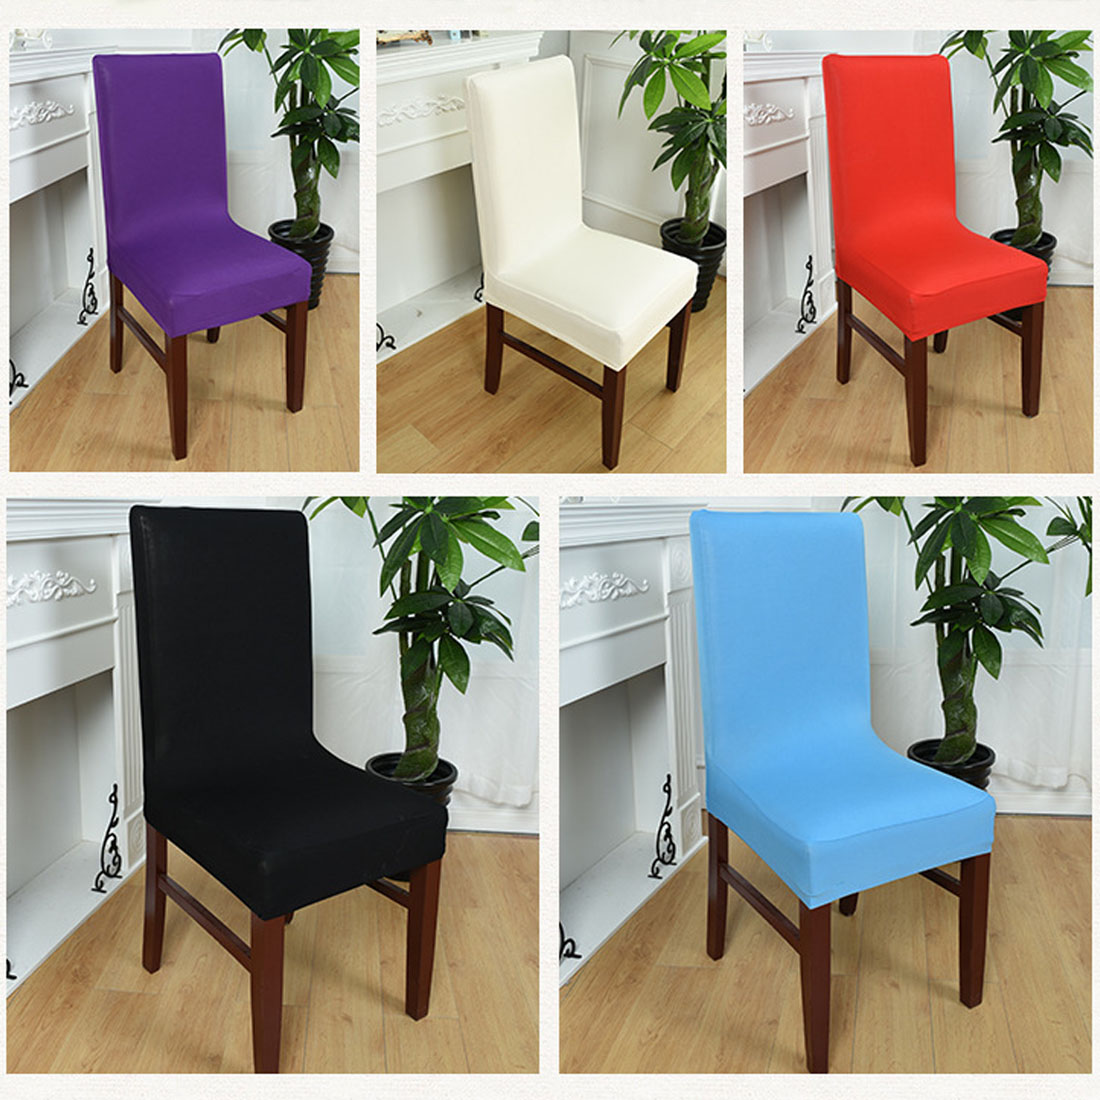 Chair Covers Dining Spandex Strech Dining Room Chair Covers Computer Chair Protector Slipcover Decor Housse De Chaise